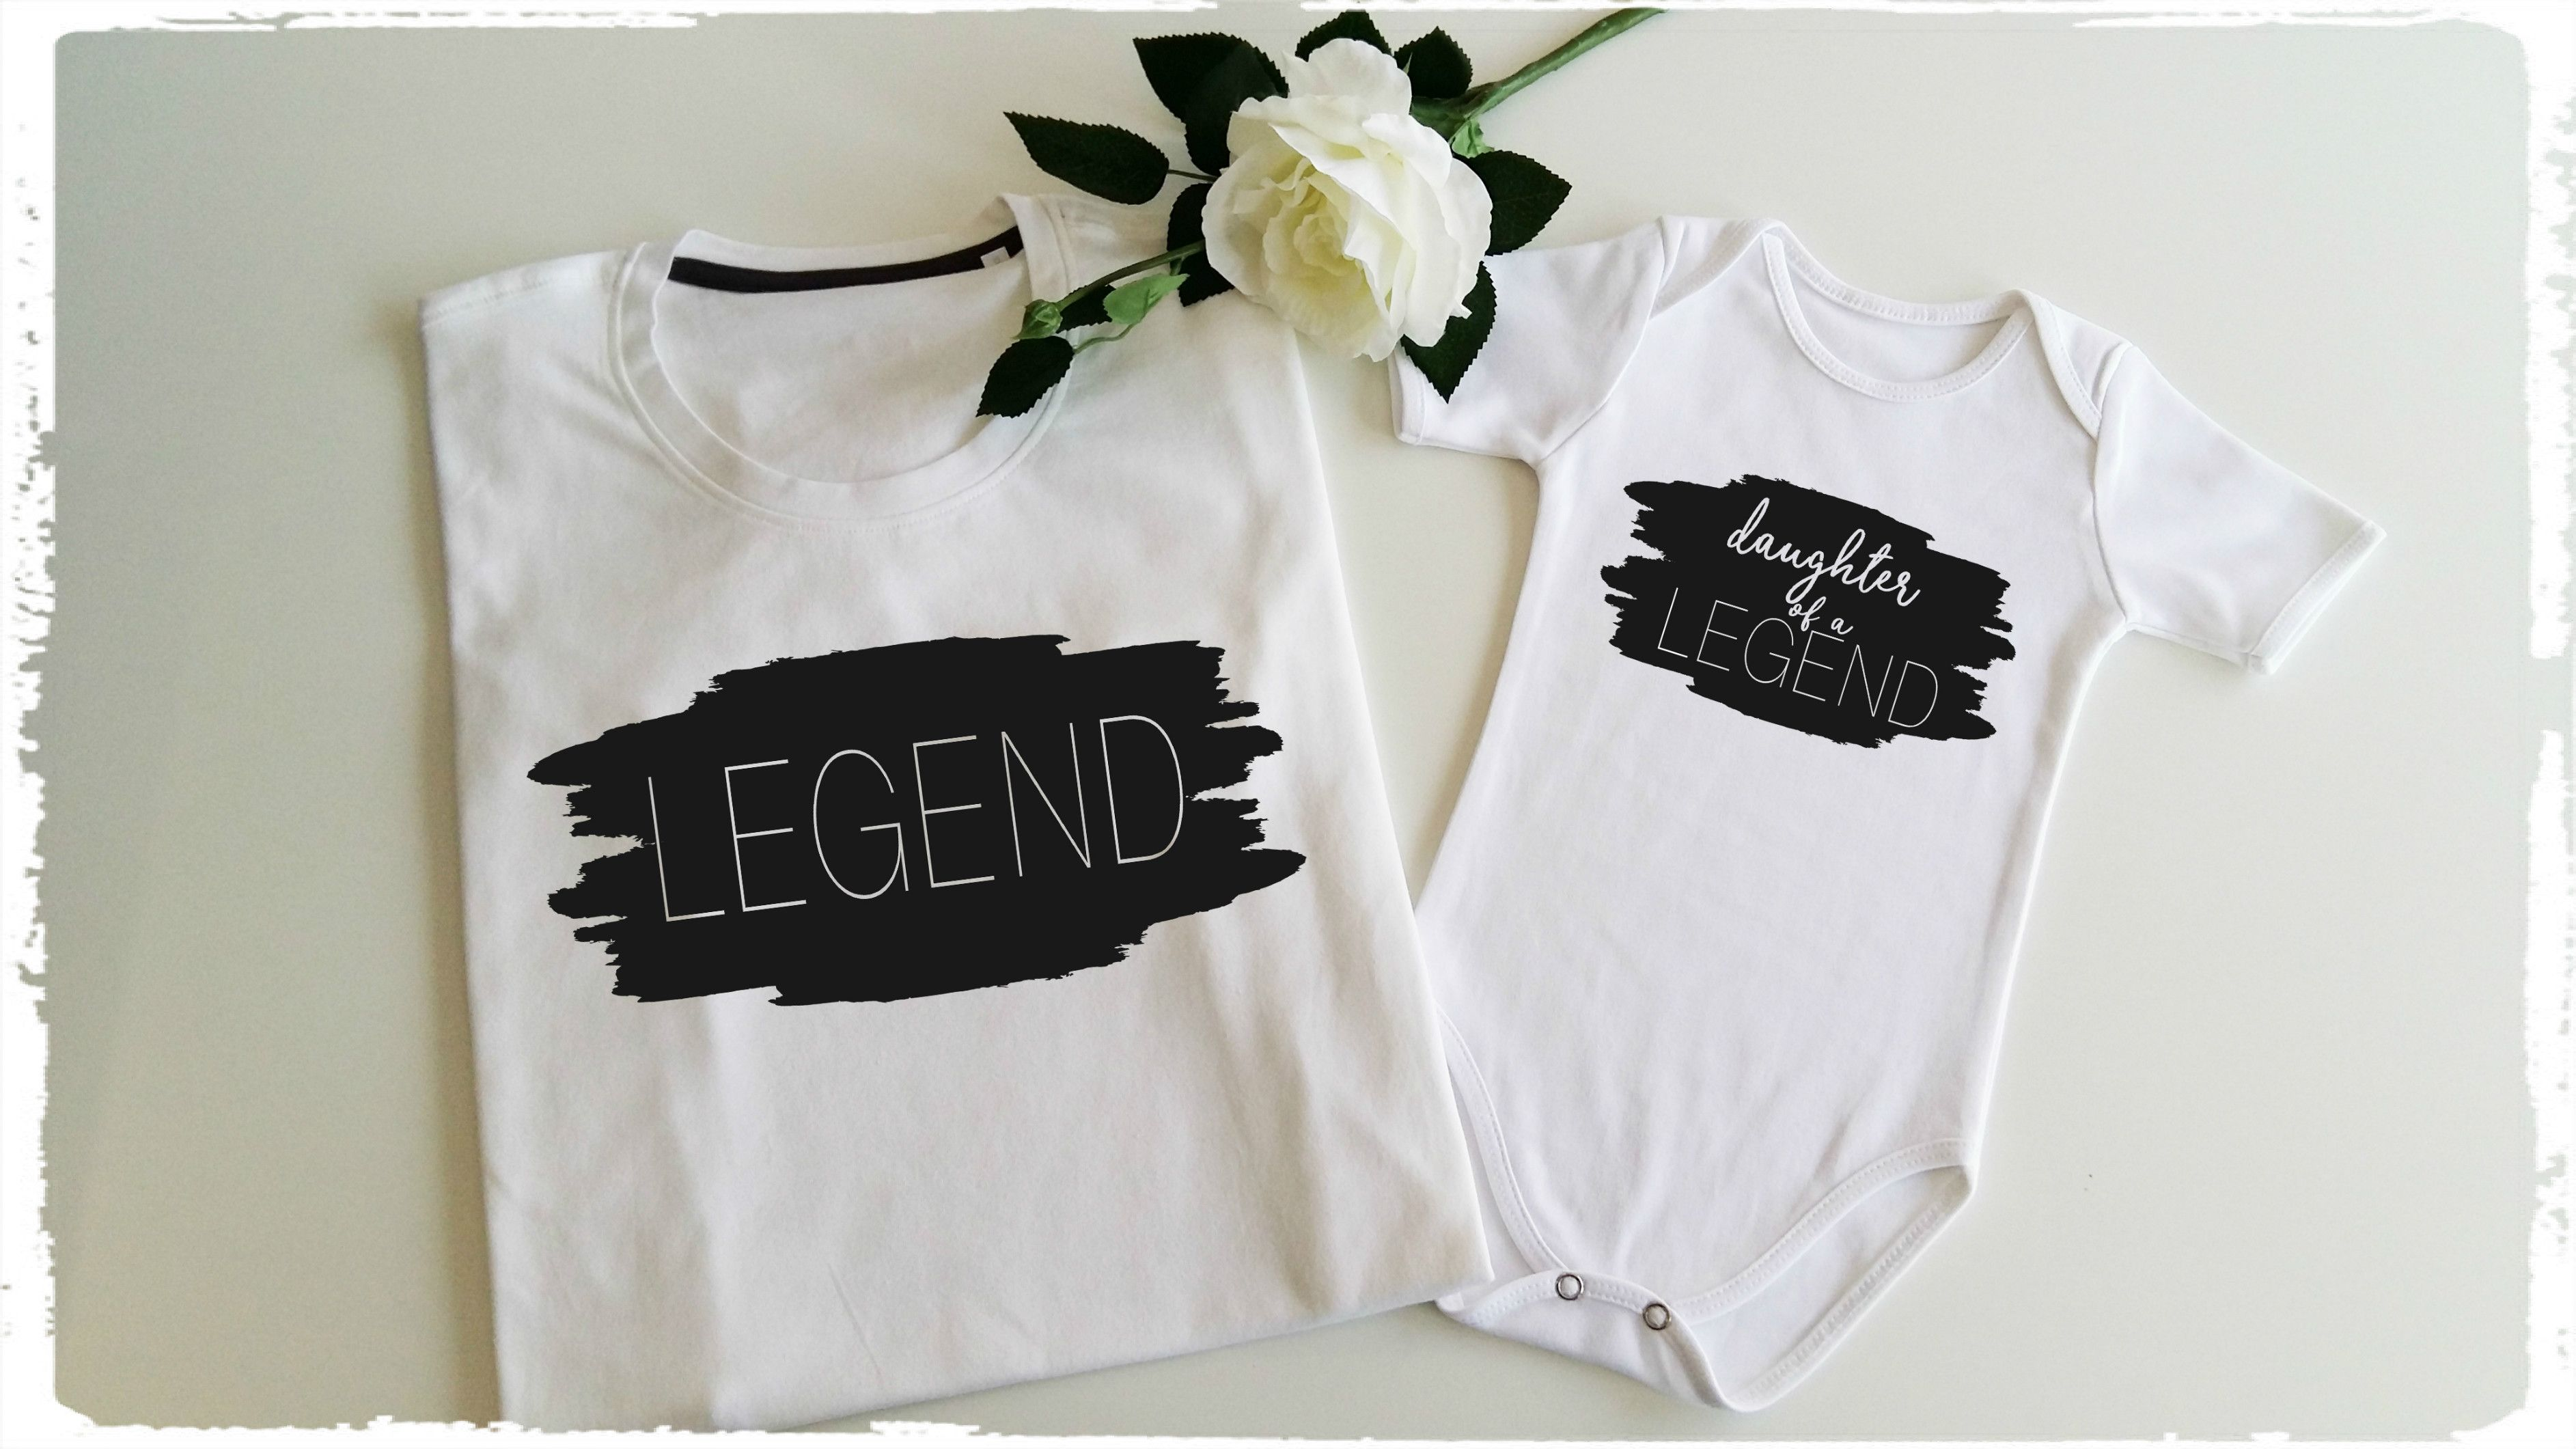 86f89be0c LEGEND and DAUGHTER of a LEGEND shirts, Father and Daughter matching outfits,  dad and baby shirts, matching daddy and me outfit; fathers day gift idea,  ...